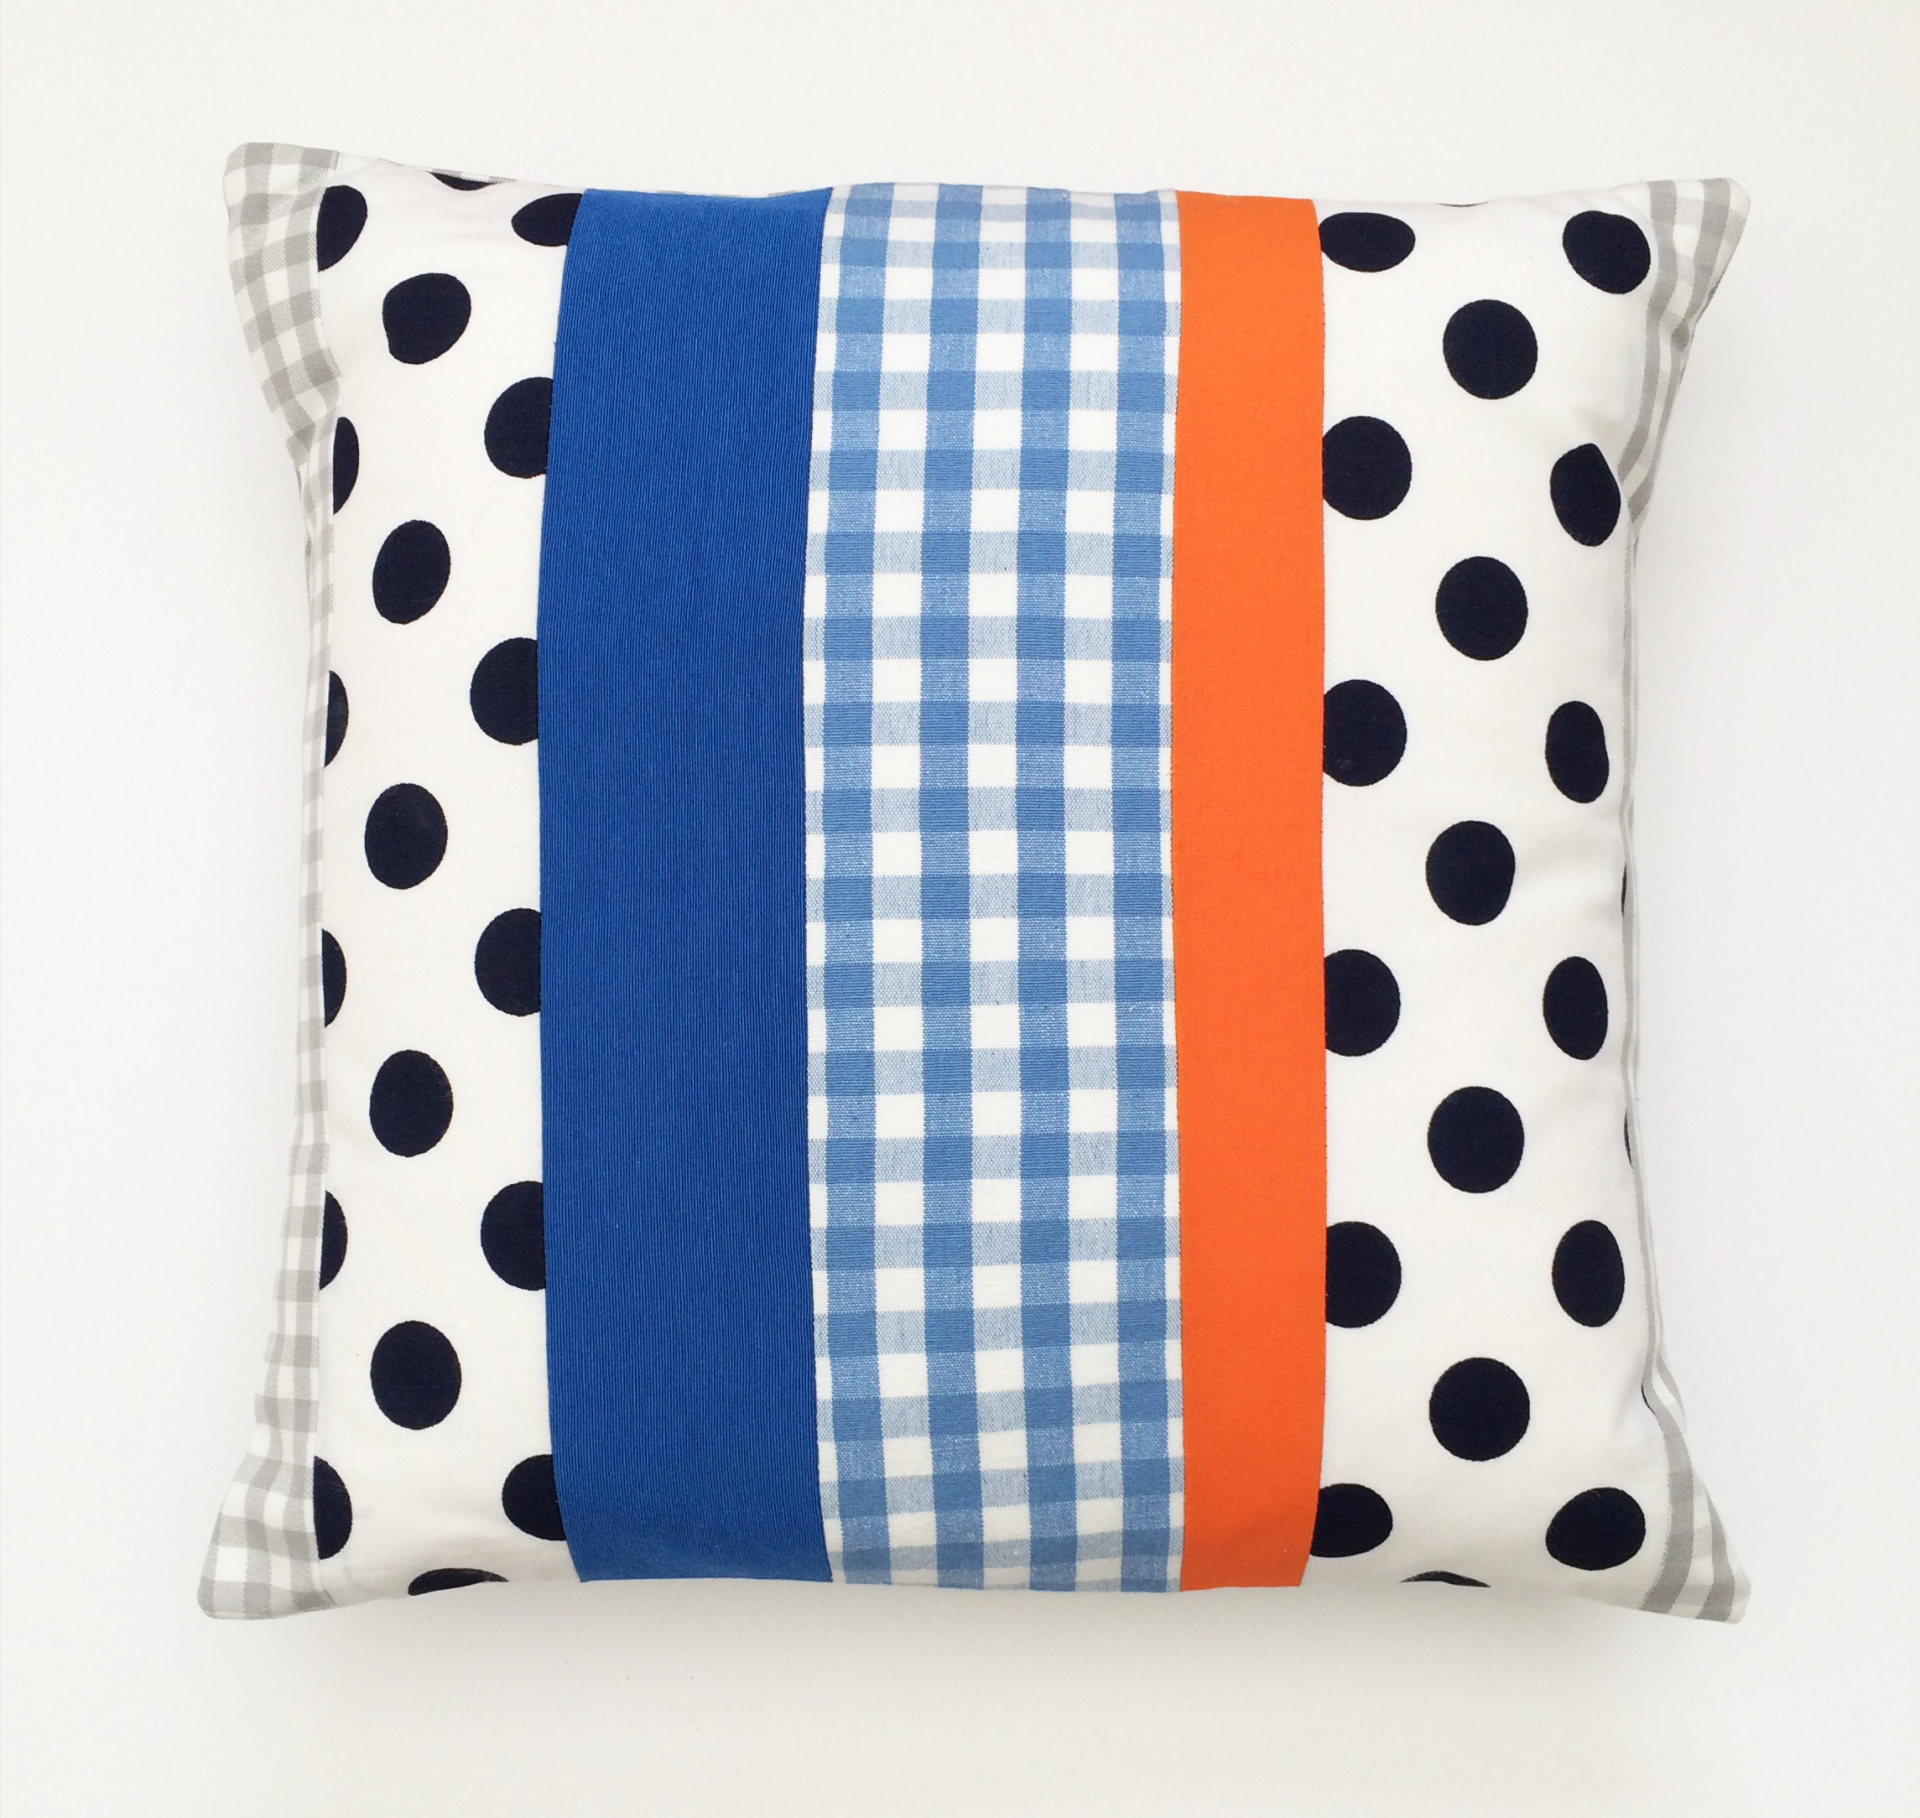 Blue and Orange Stripe - £35